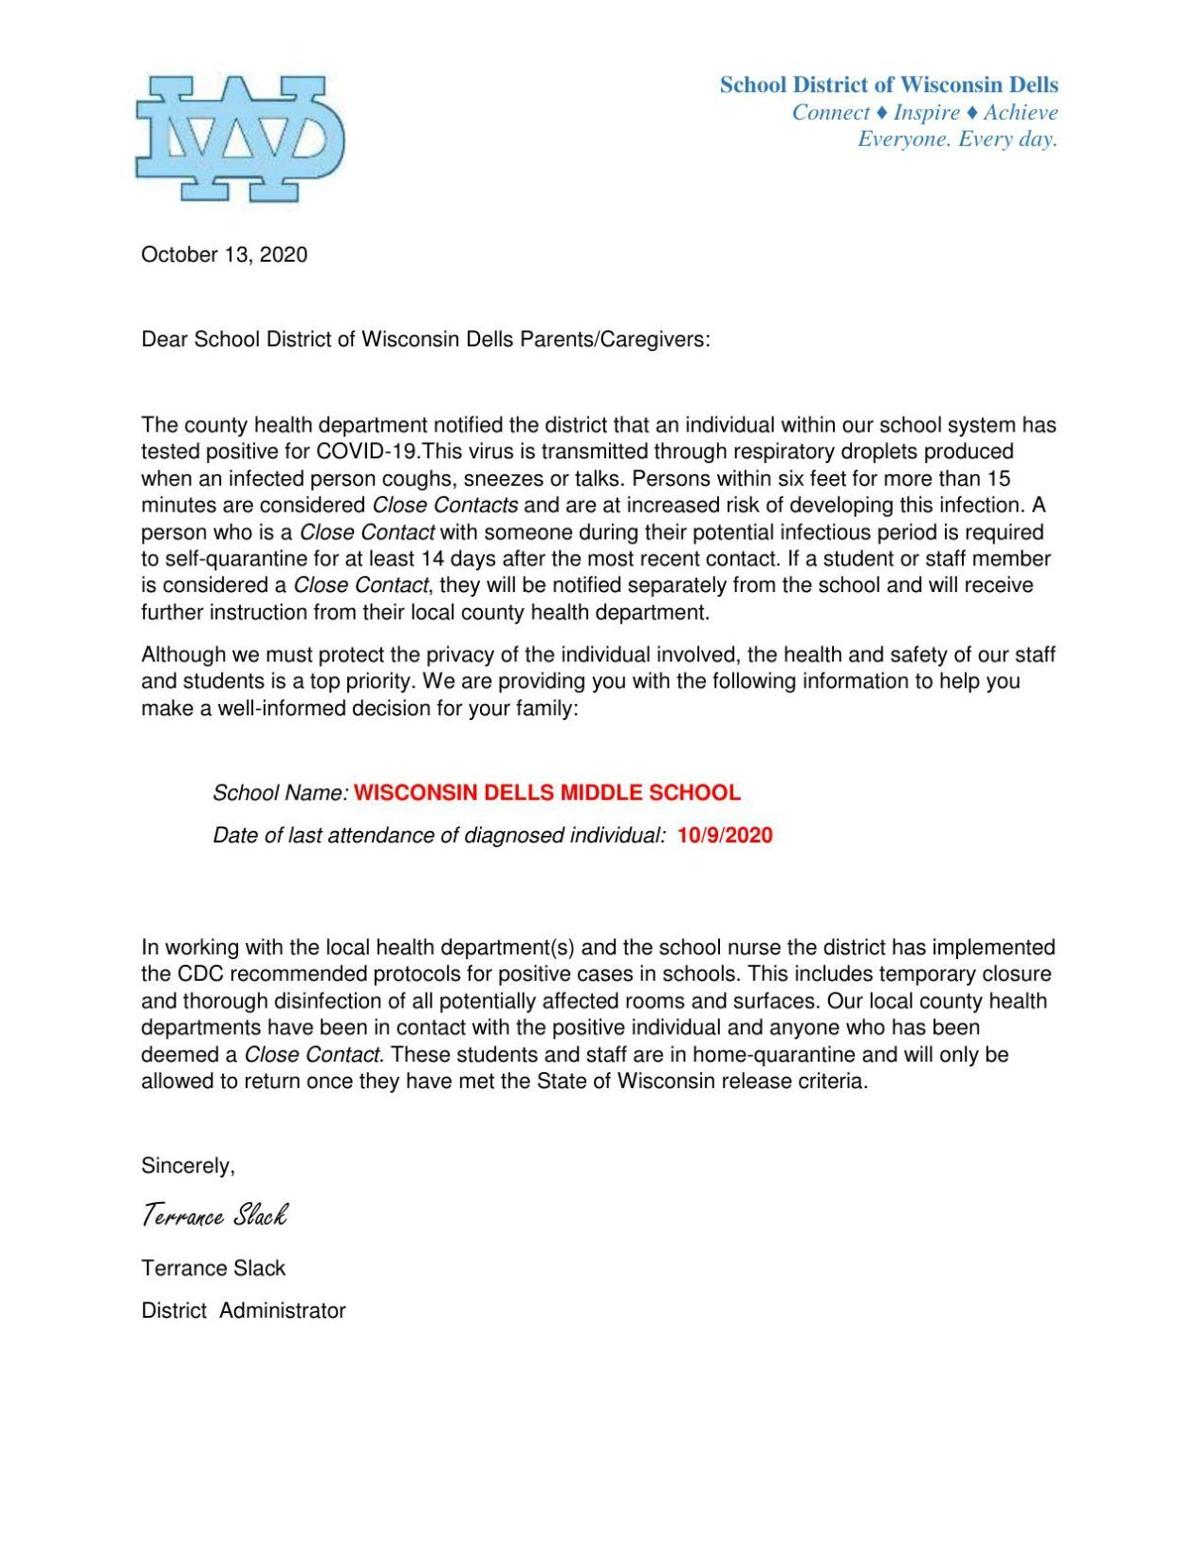 Wisconsin Dells School District Oct. 13 COVID-19 letter middle school